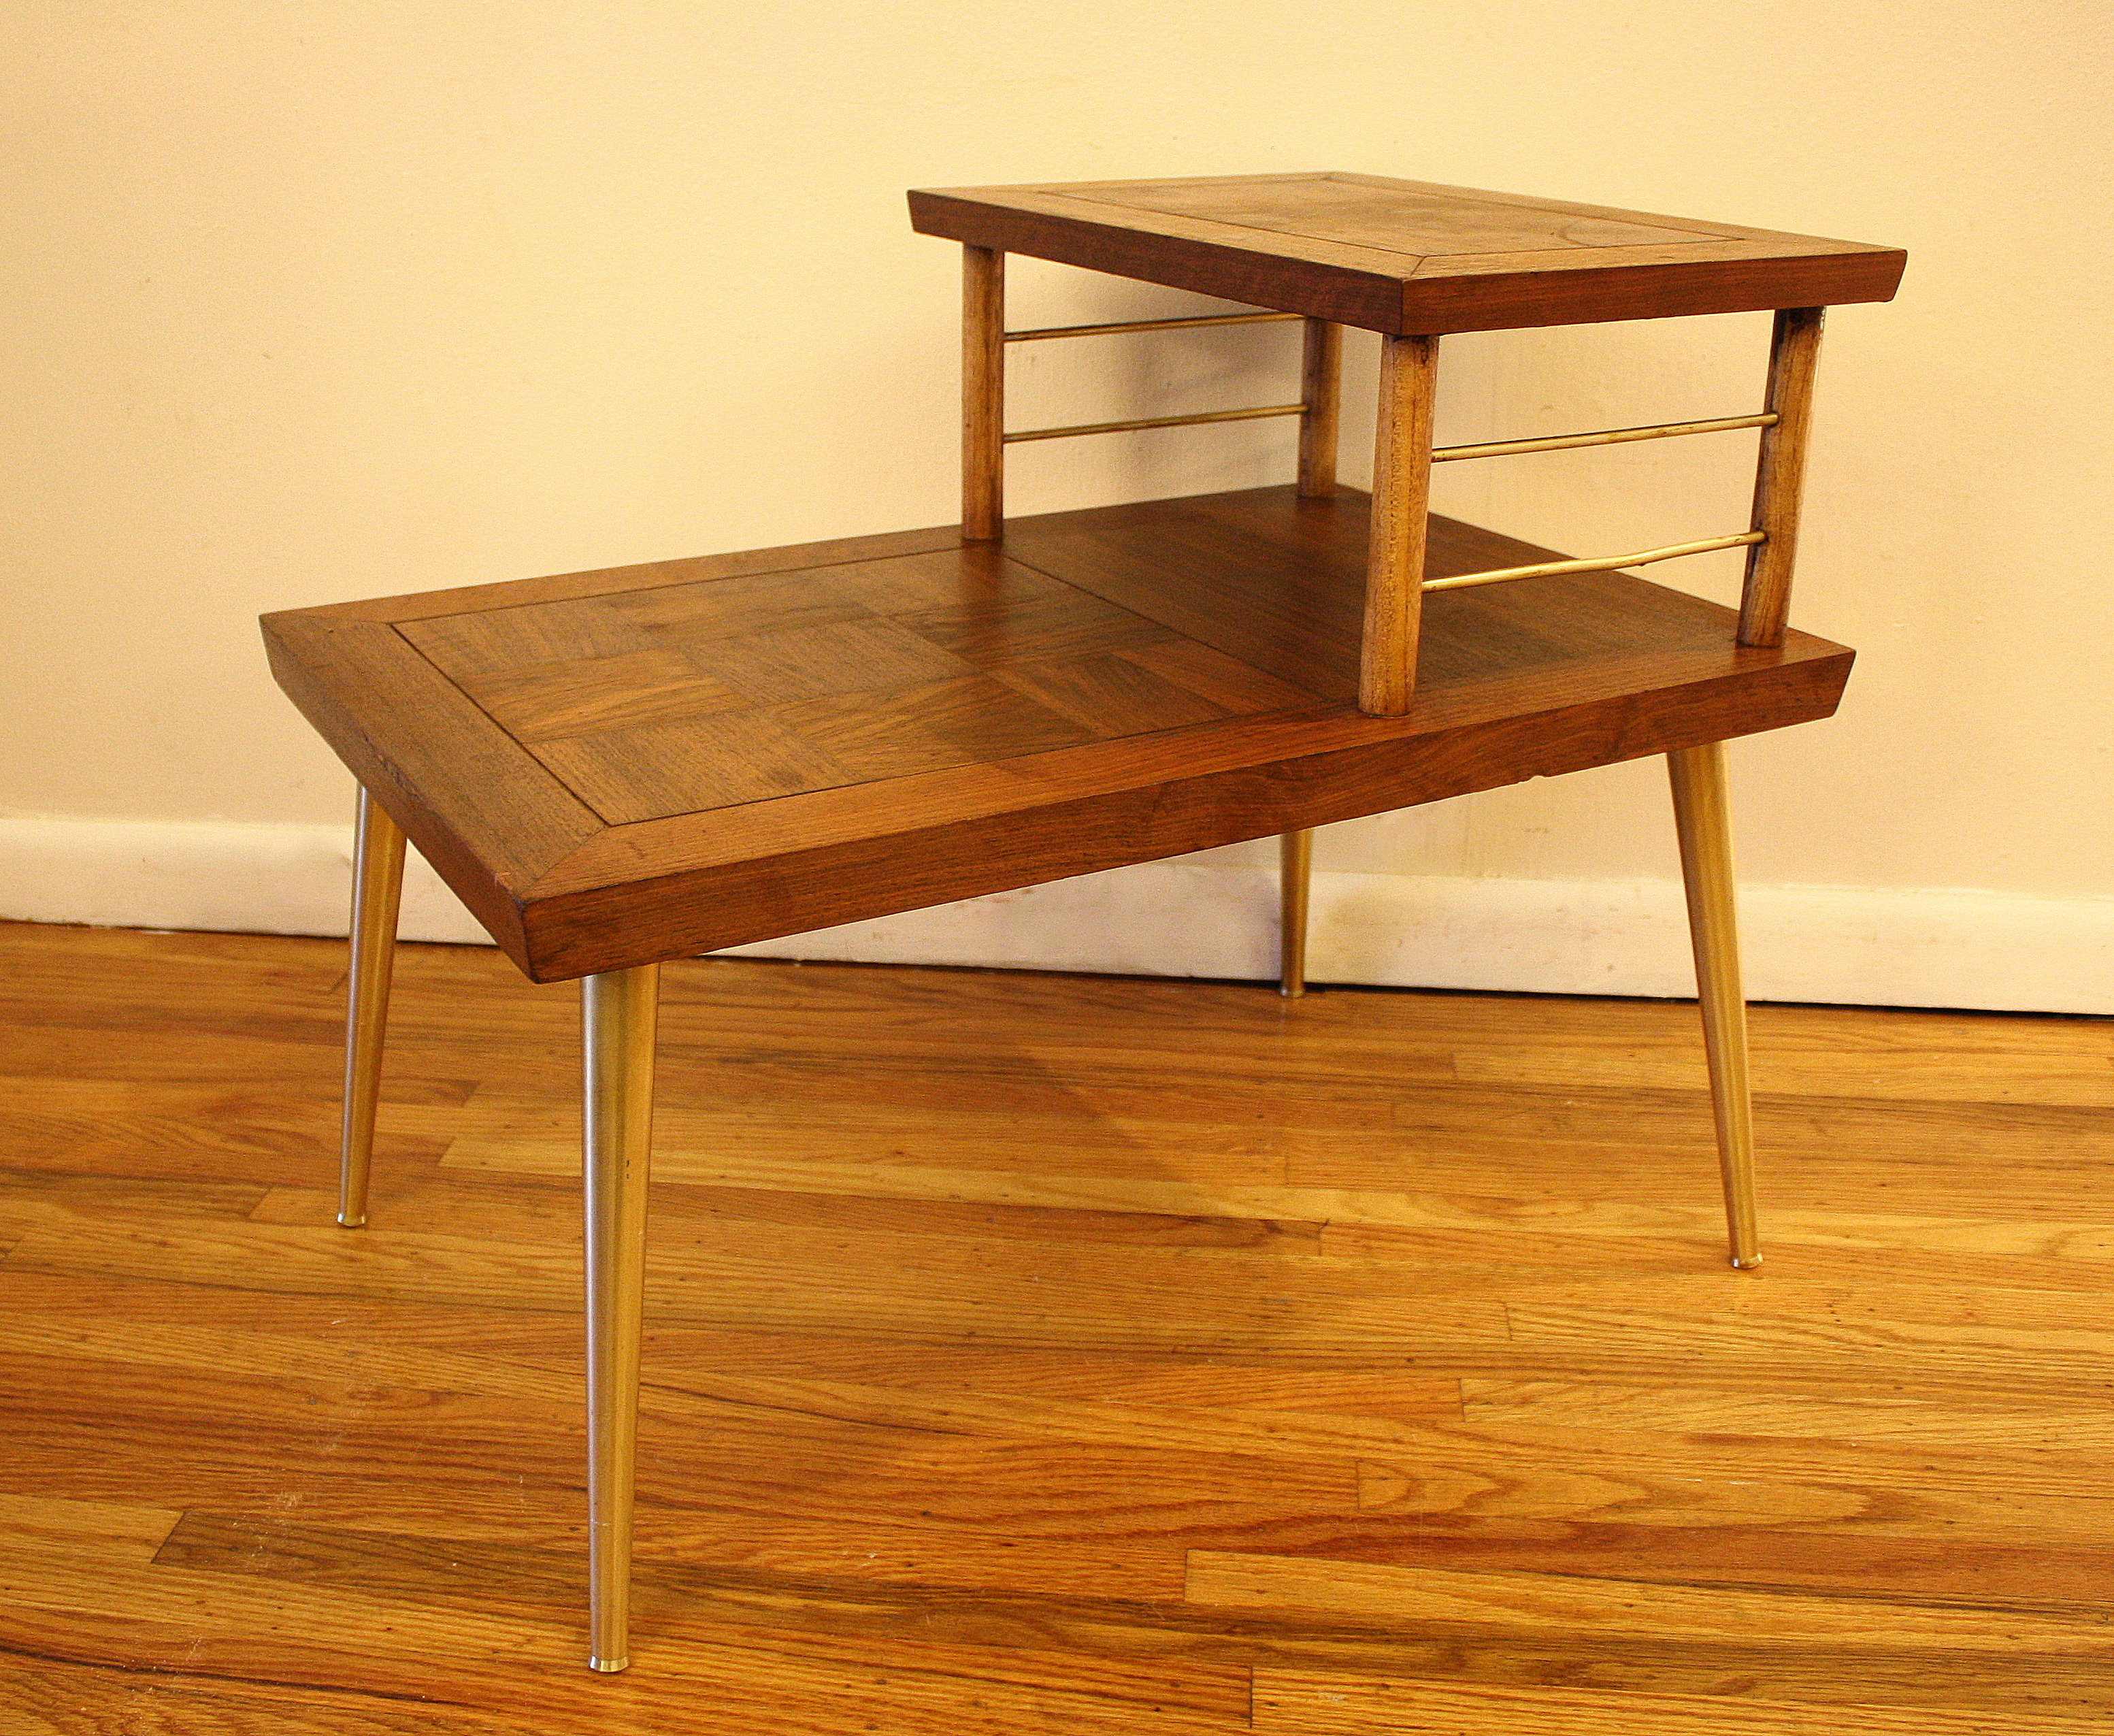 Charmant Mcm Parquet Two Tiered Side Table 1